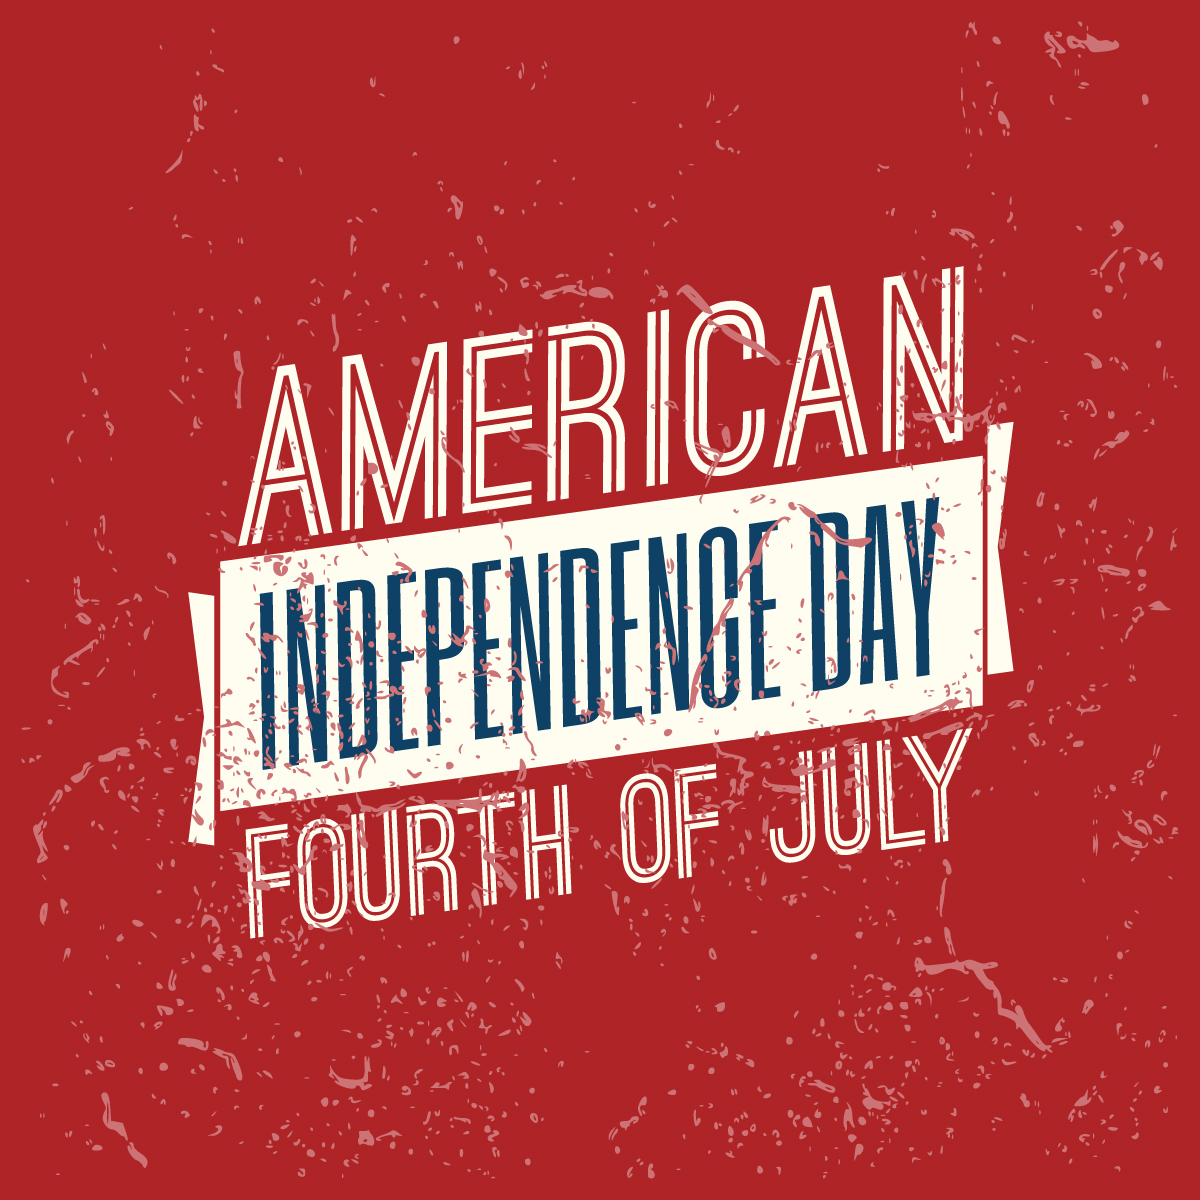 Why is Independence Day celebrated on July 4th? The Continental Congress declared its independence from Great Britain on July 2, 1776. If that date raises an eyebrow, it should. Independence Day in the United States has long been celebrated on July 4th, which would seem to be two days late.